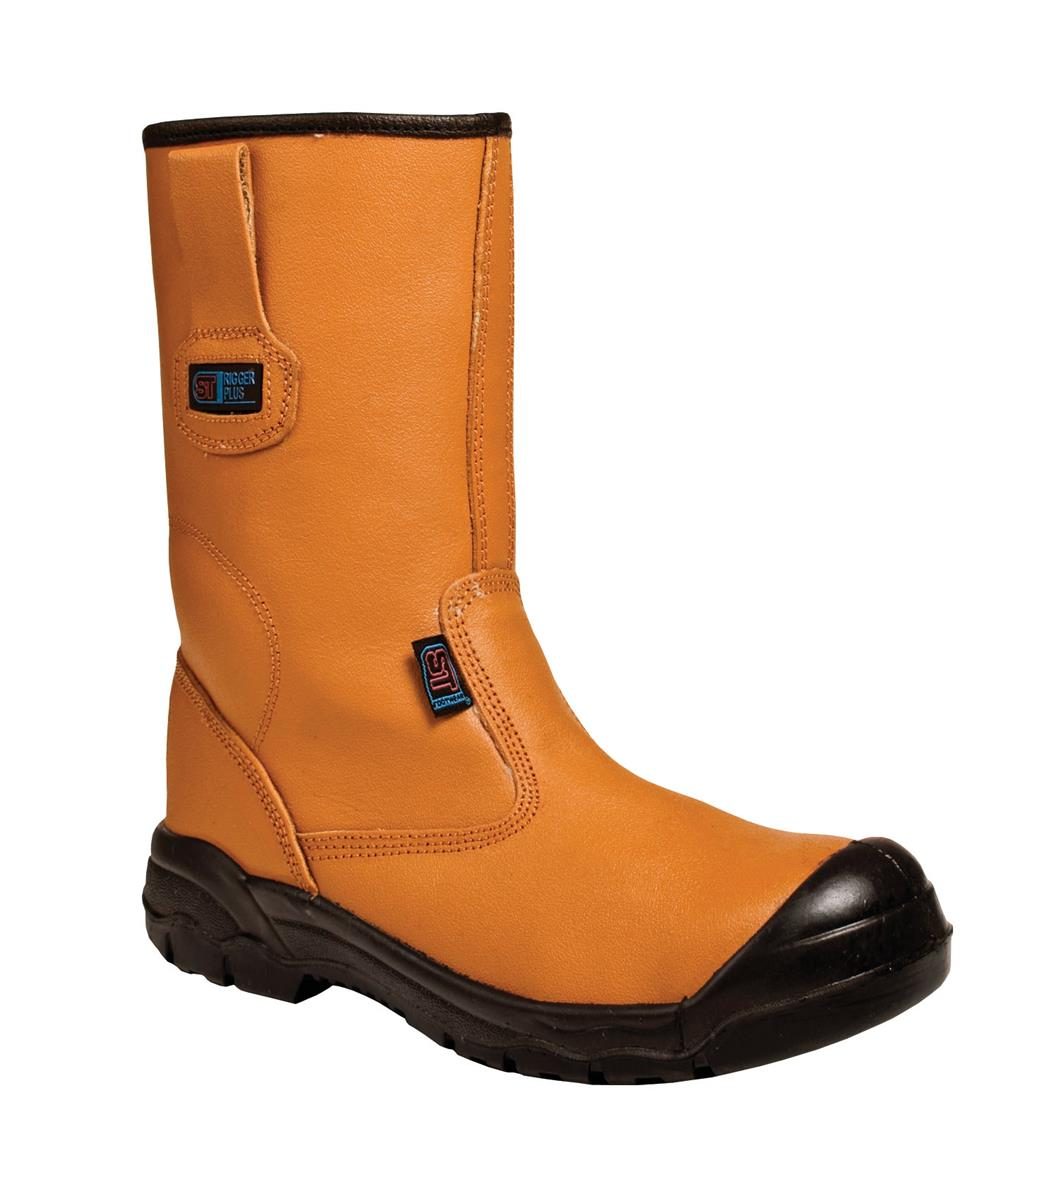 Supertouch Rigger Boot Plus Leather with Rubber Toecap Size 10 Tan Ref 90515 *Approx 3 Day Leadtime*